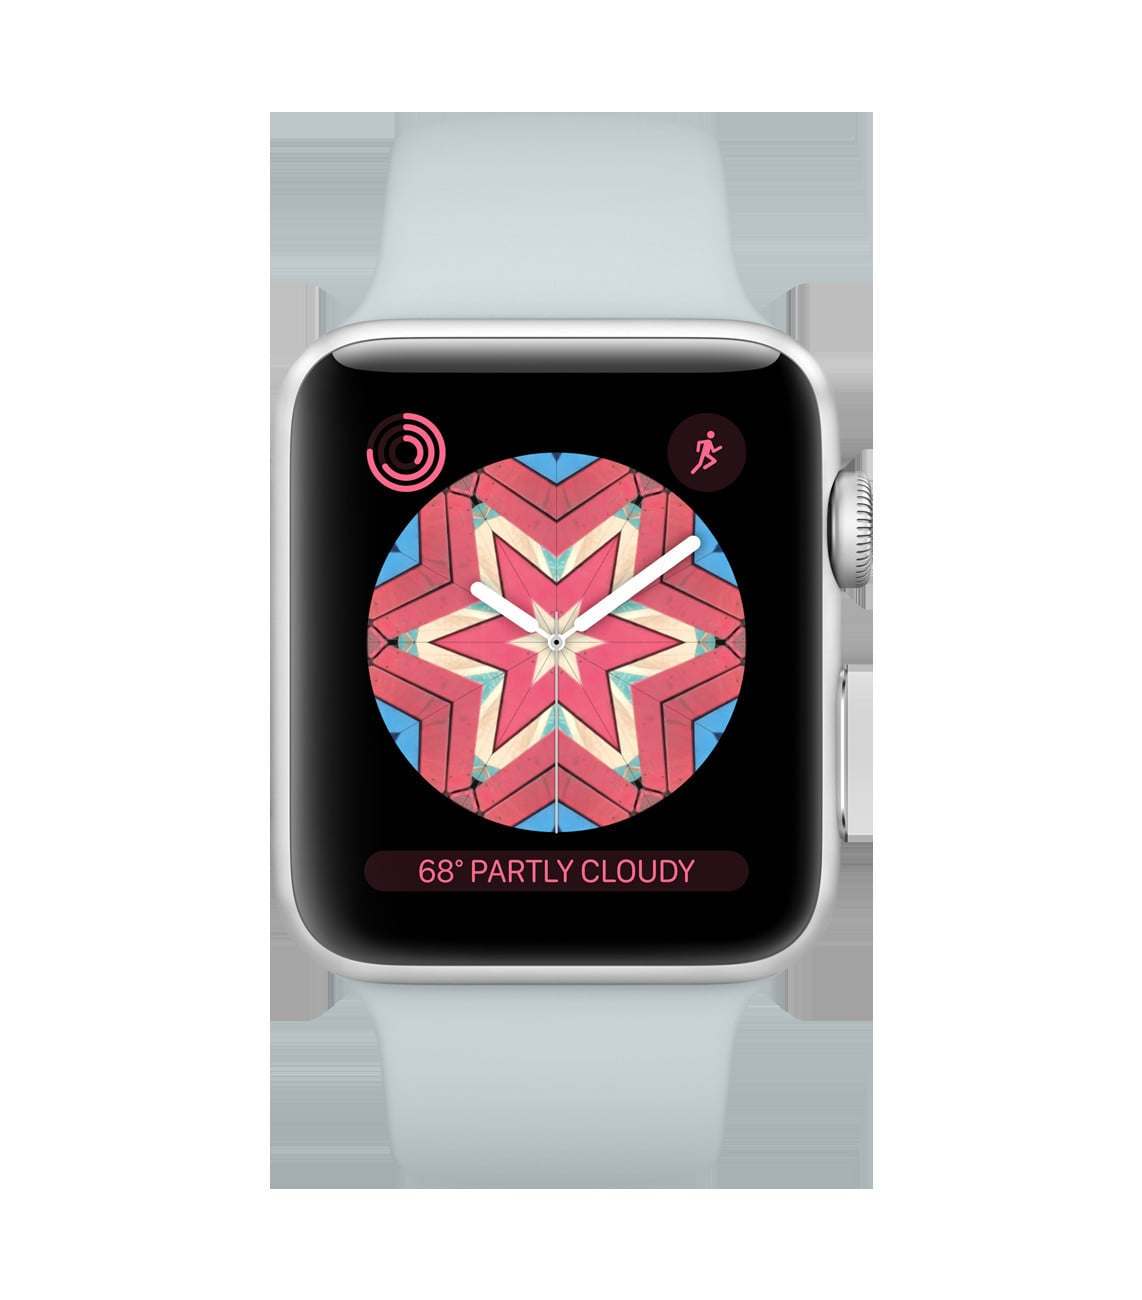 third-party Apple Watch faces